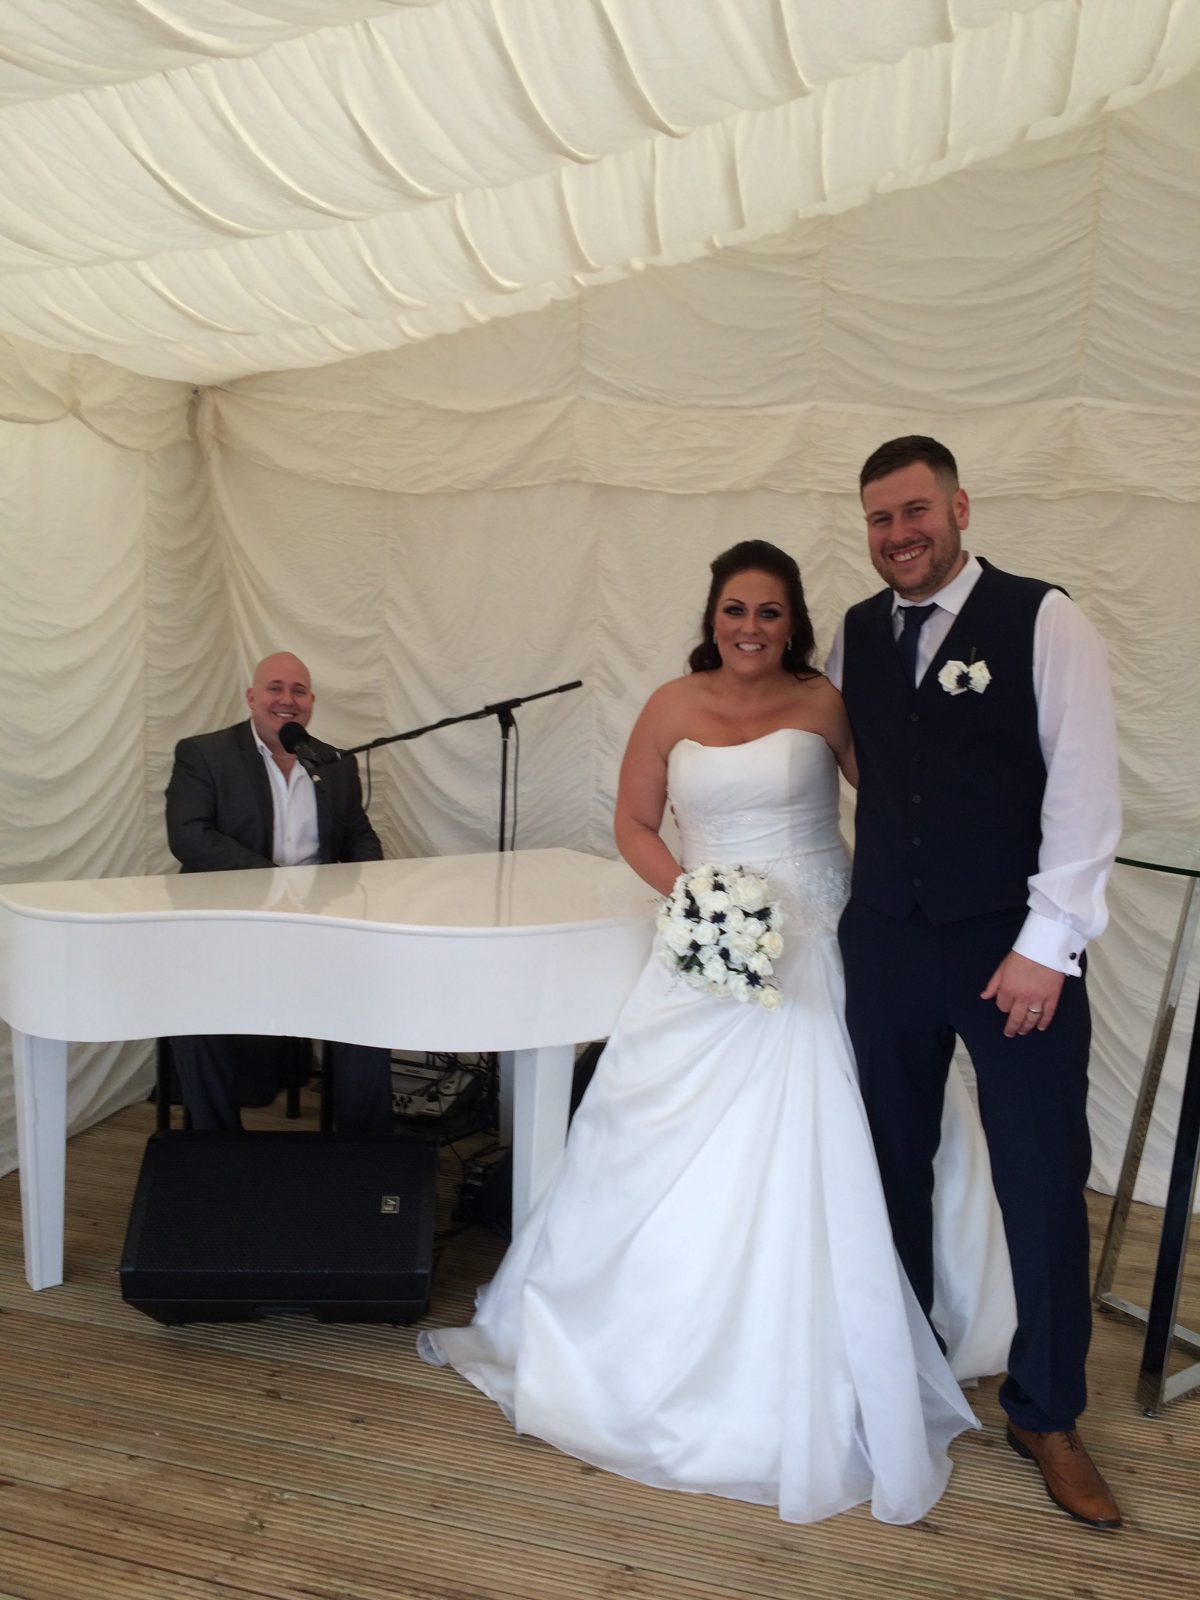 Mark Hendry and the Bride